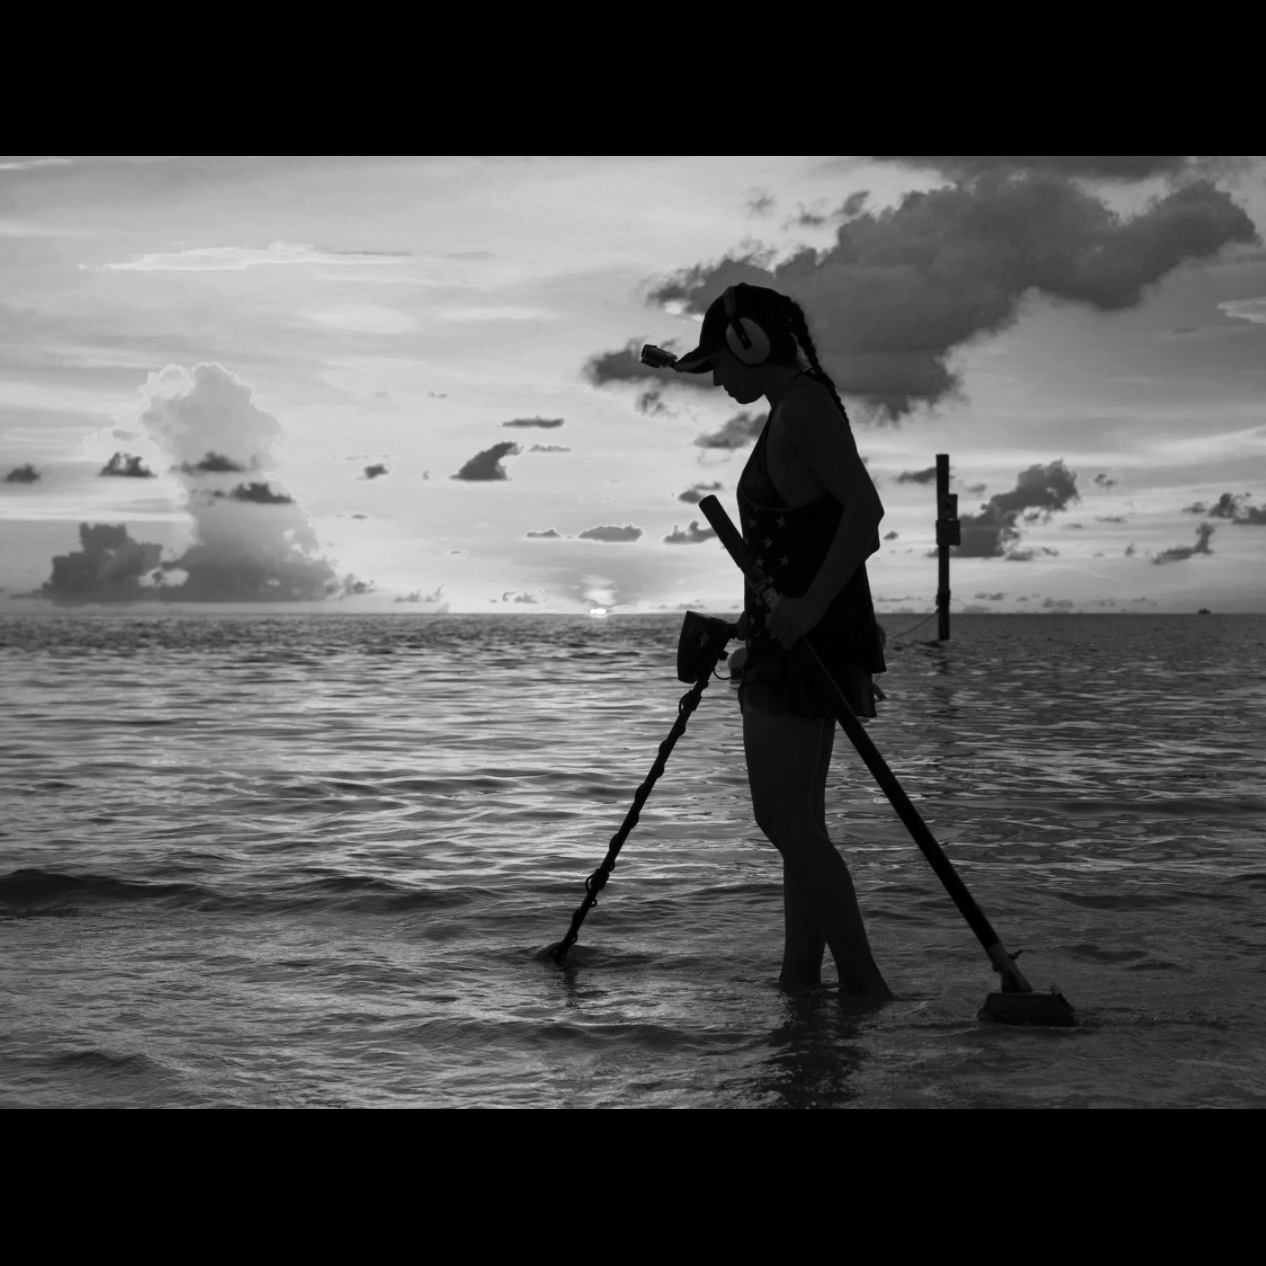 Silhouette of She Detector Water Hunting for Treasures at the beach with Garrett Metal Detector in Front of her and Sand Scoop Behind with Cloudy Sky in Background all in Black and White